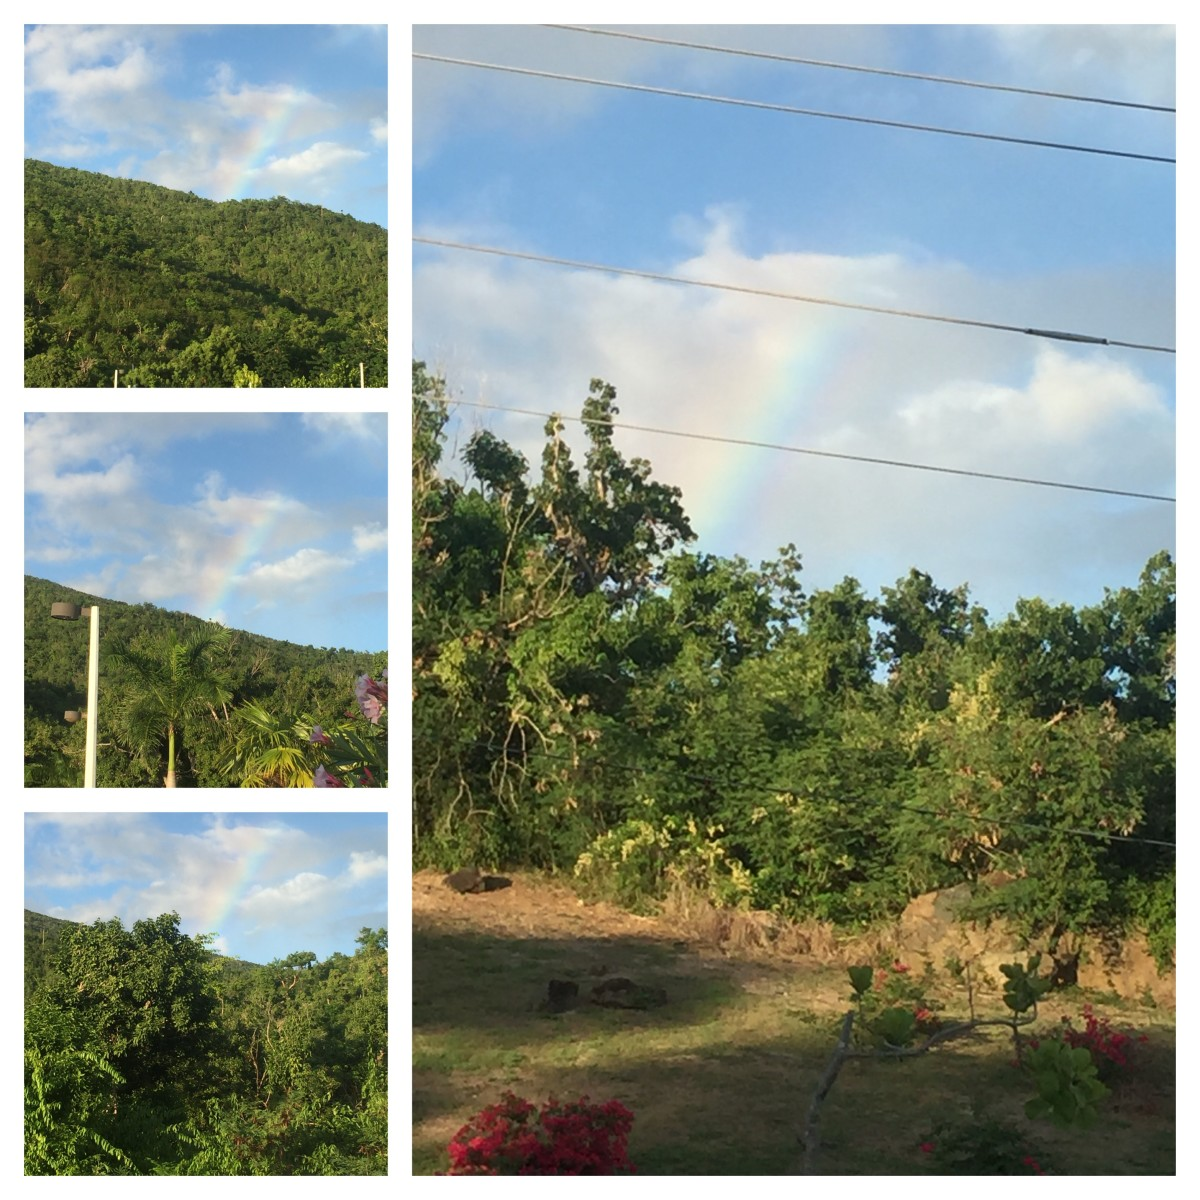 September 23, 2018 @ 5:37pm. Driving going west side on Brewers Beach stretch. Rainbow and north east. Over the UVI Library. Reichold Center. Captured Rainbow and uvi landscape. Beautiful